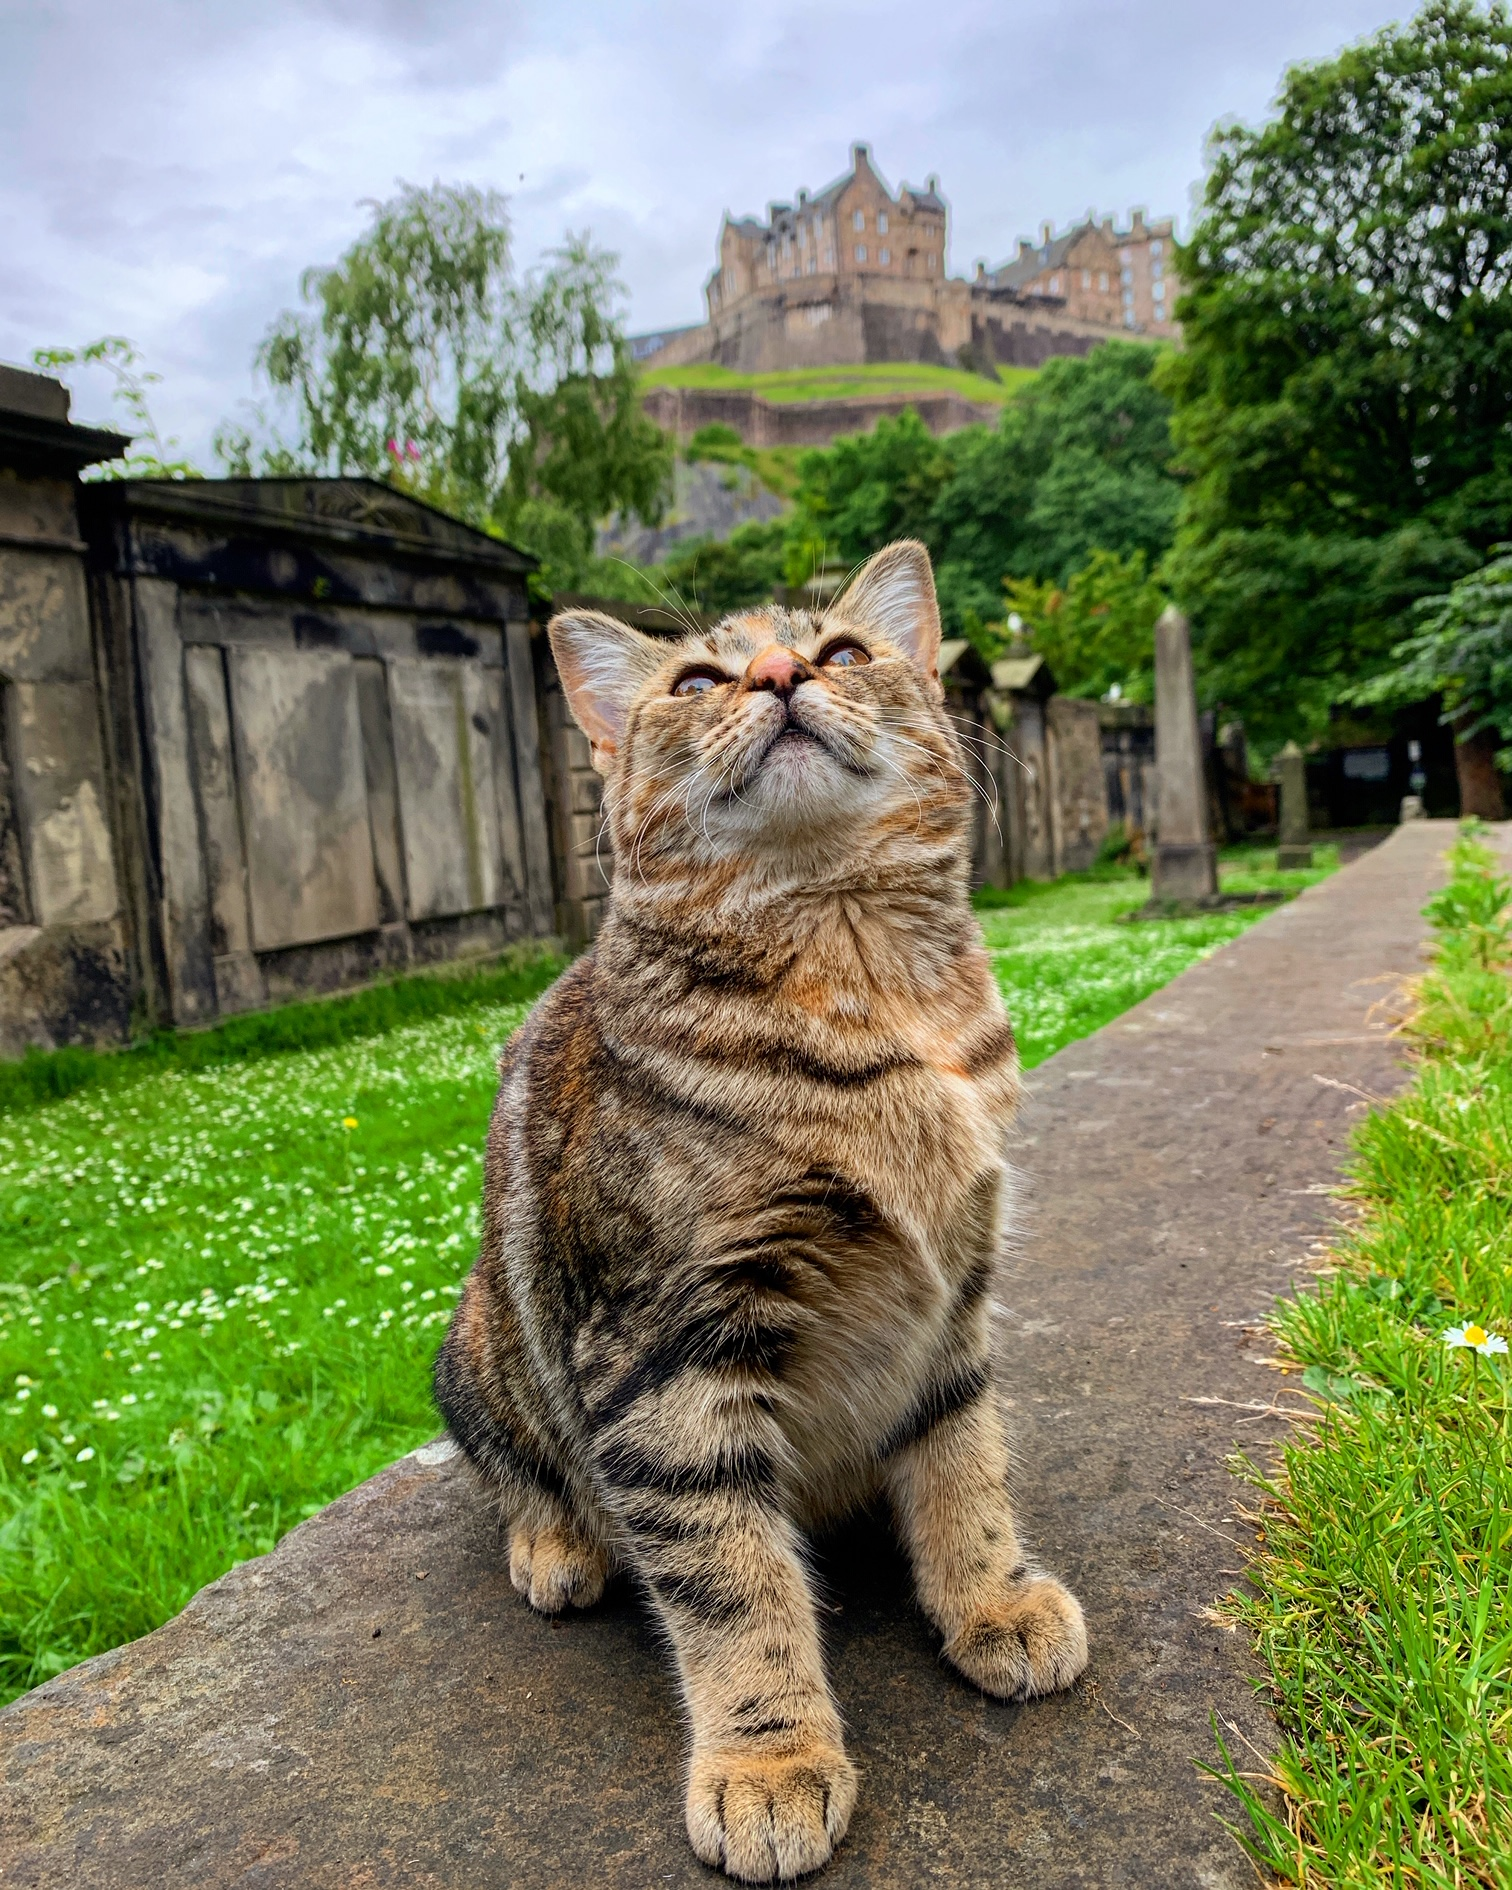 2019-07-20 (Quita the Kitty) Edinburgh Castle